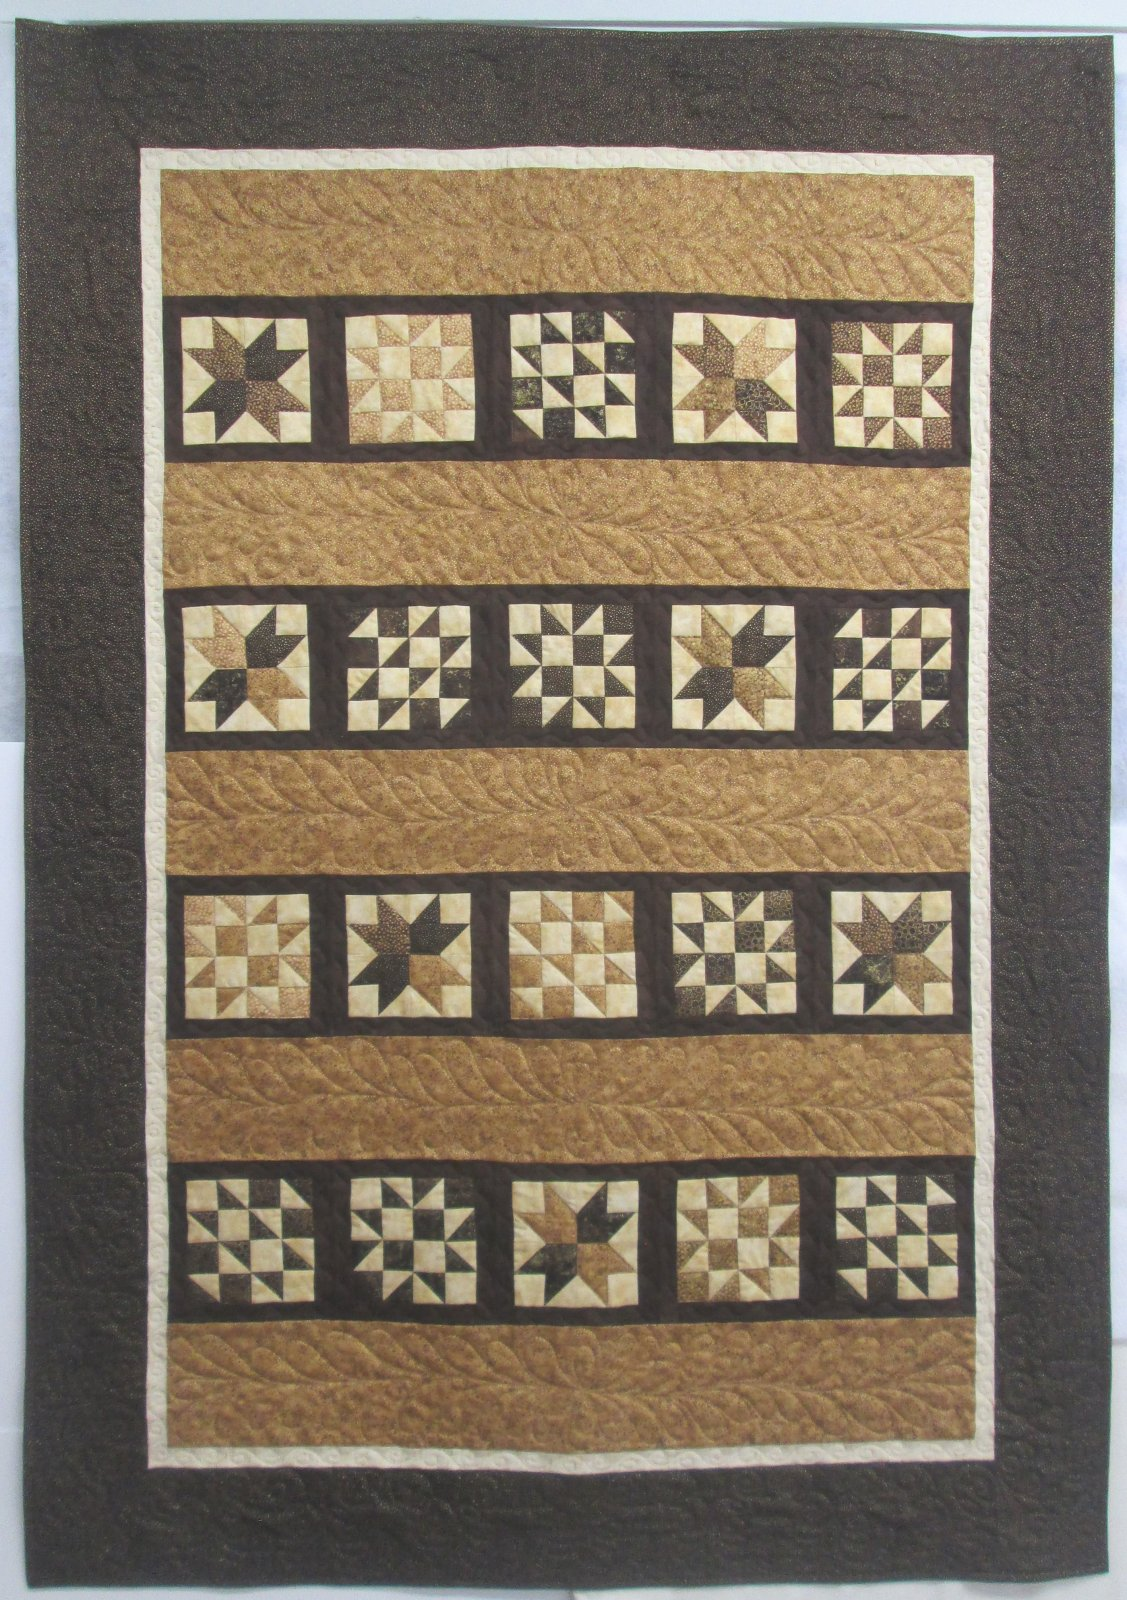 Artisan Spirit Shimmer Double Trouble Moda Cupcake Mix Quilt Kit 54.5 by 76.5 Includes Binding